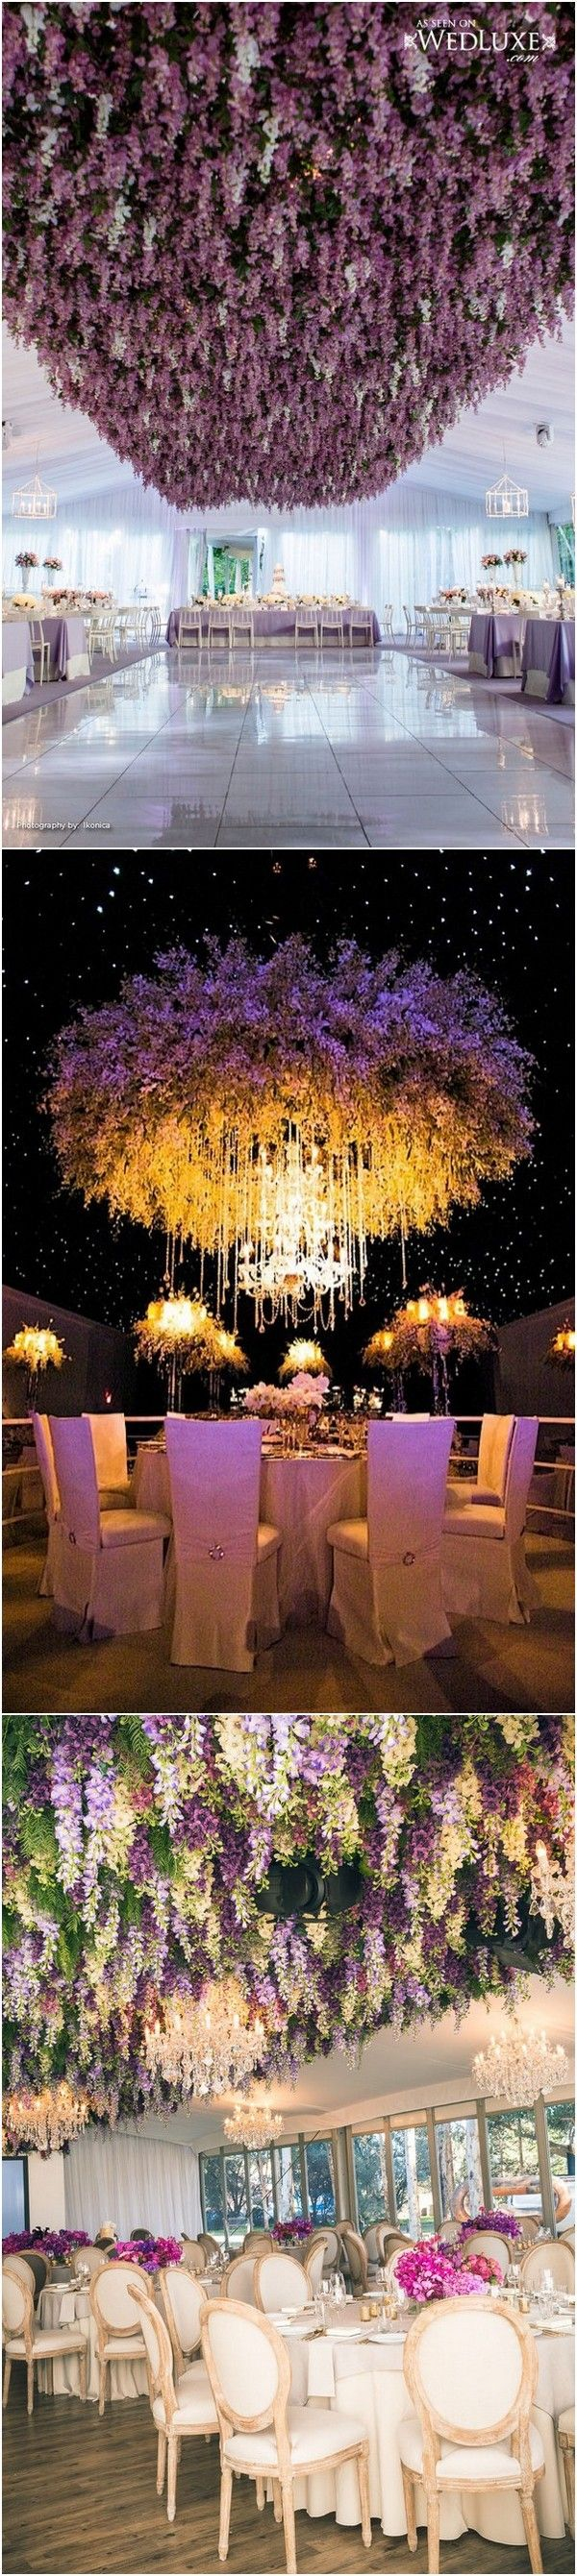 Trending 12 fairytale wedding flower ceiling ideas for your big day flower hanging from the ceiling wedding decoration ideas wedding weddingideas weddingflowers junglespirit Image collections